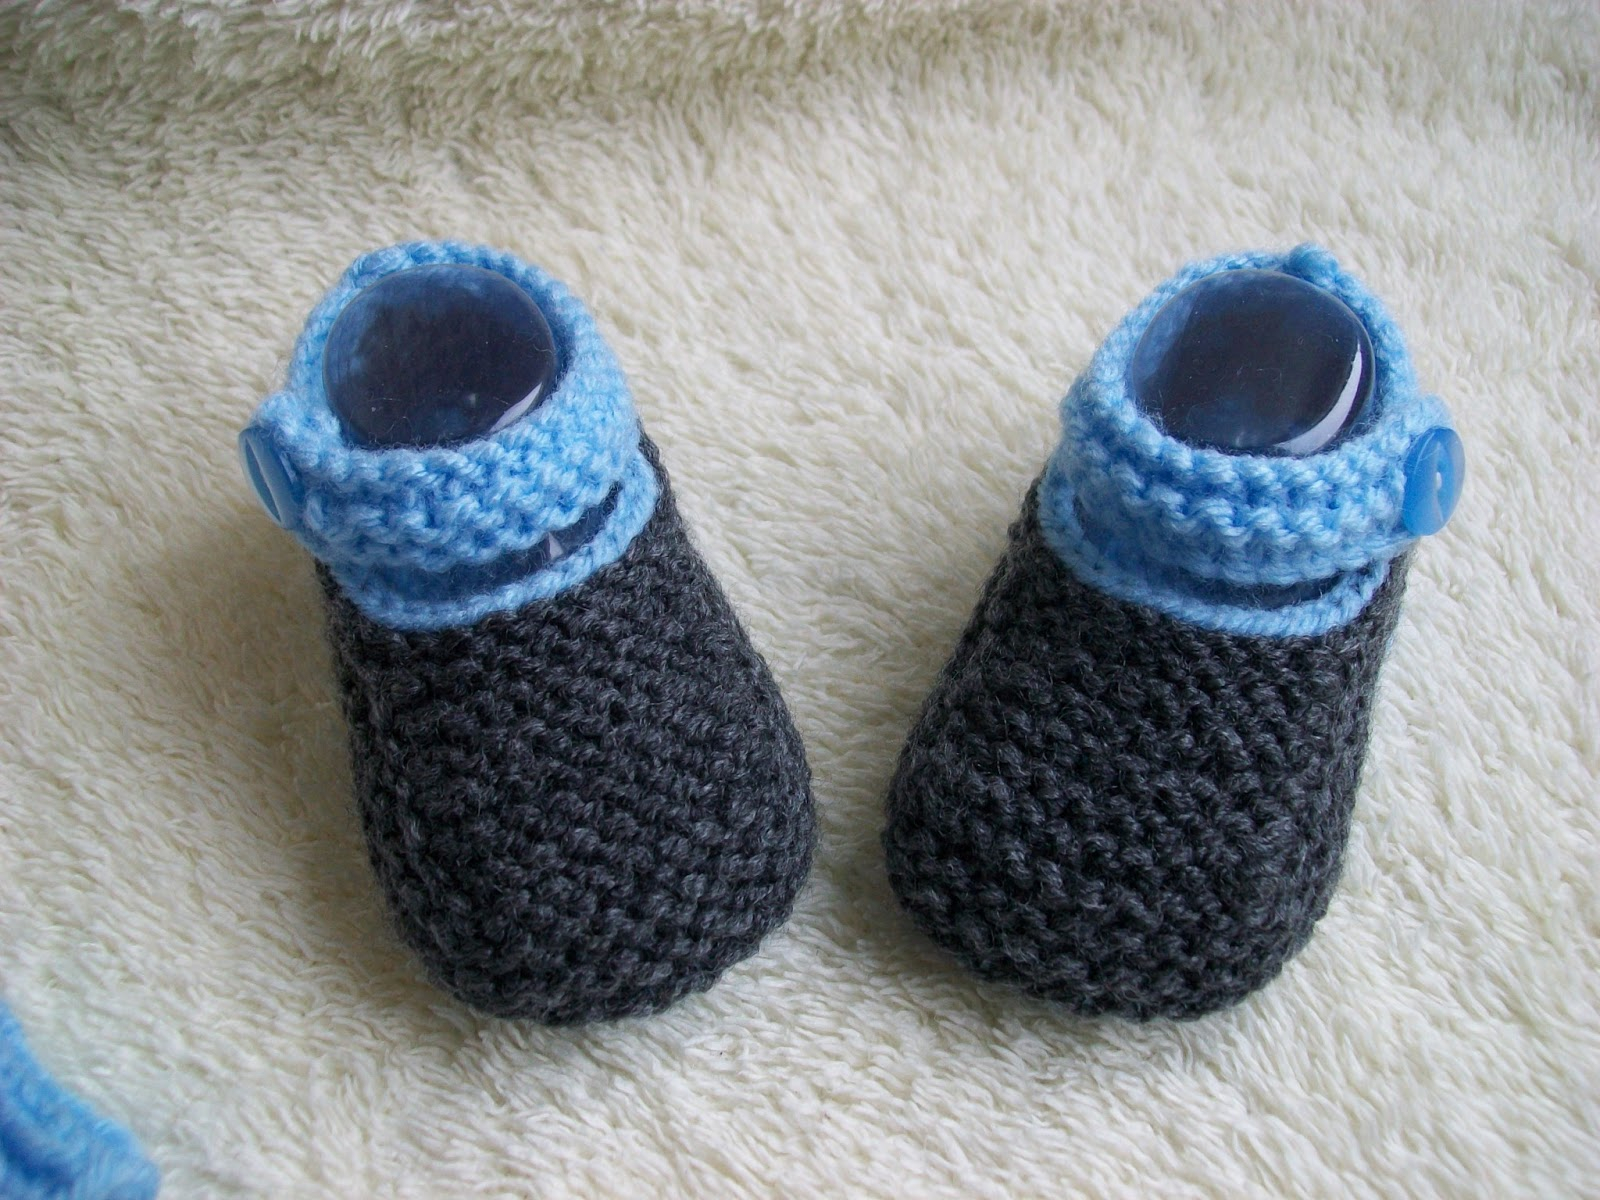 Baby Socks Knitting Patterns 30 Free Patterns For Knitted Ba Booties Guide Patterns